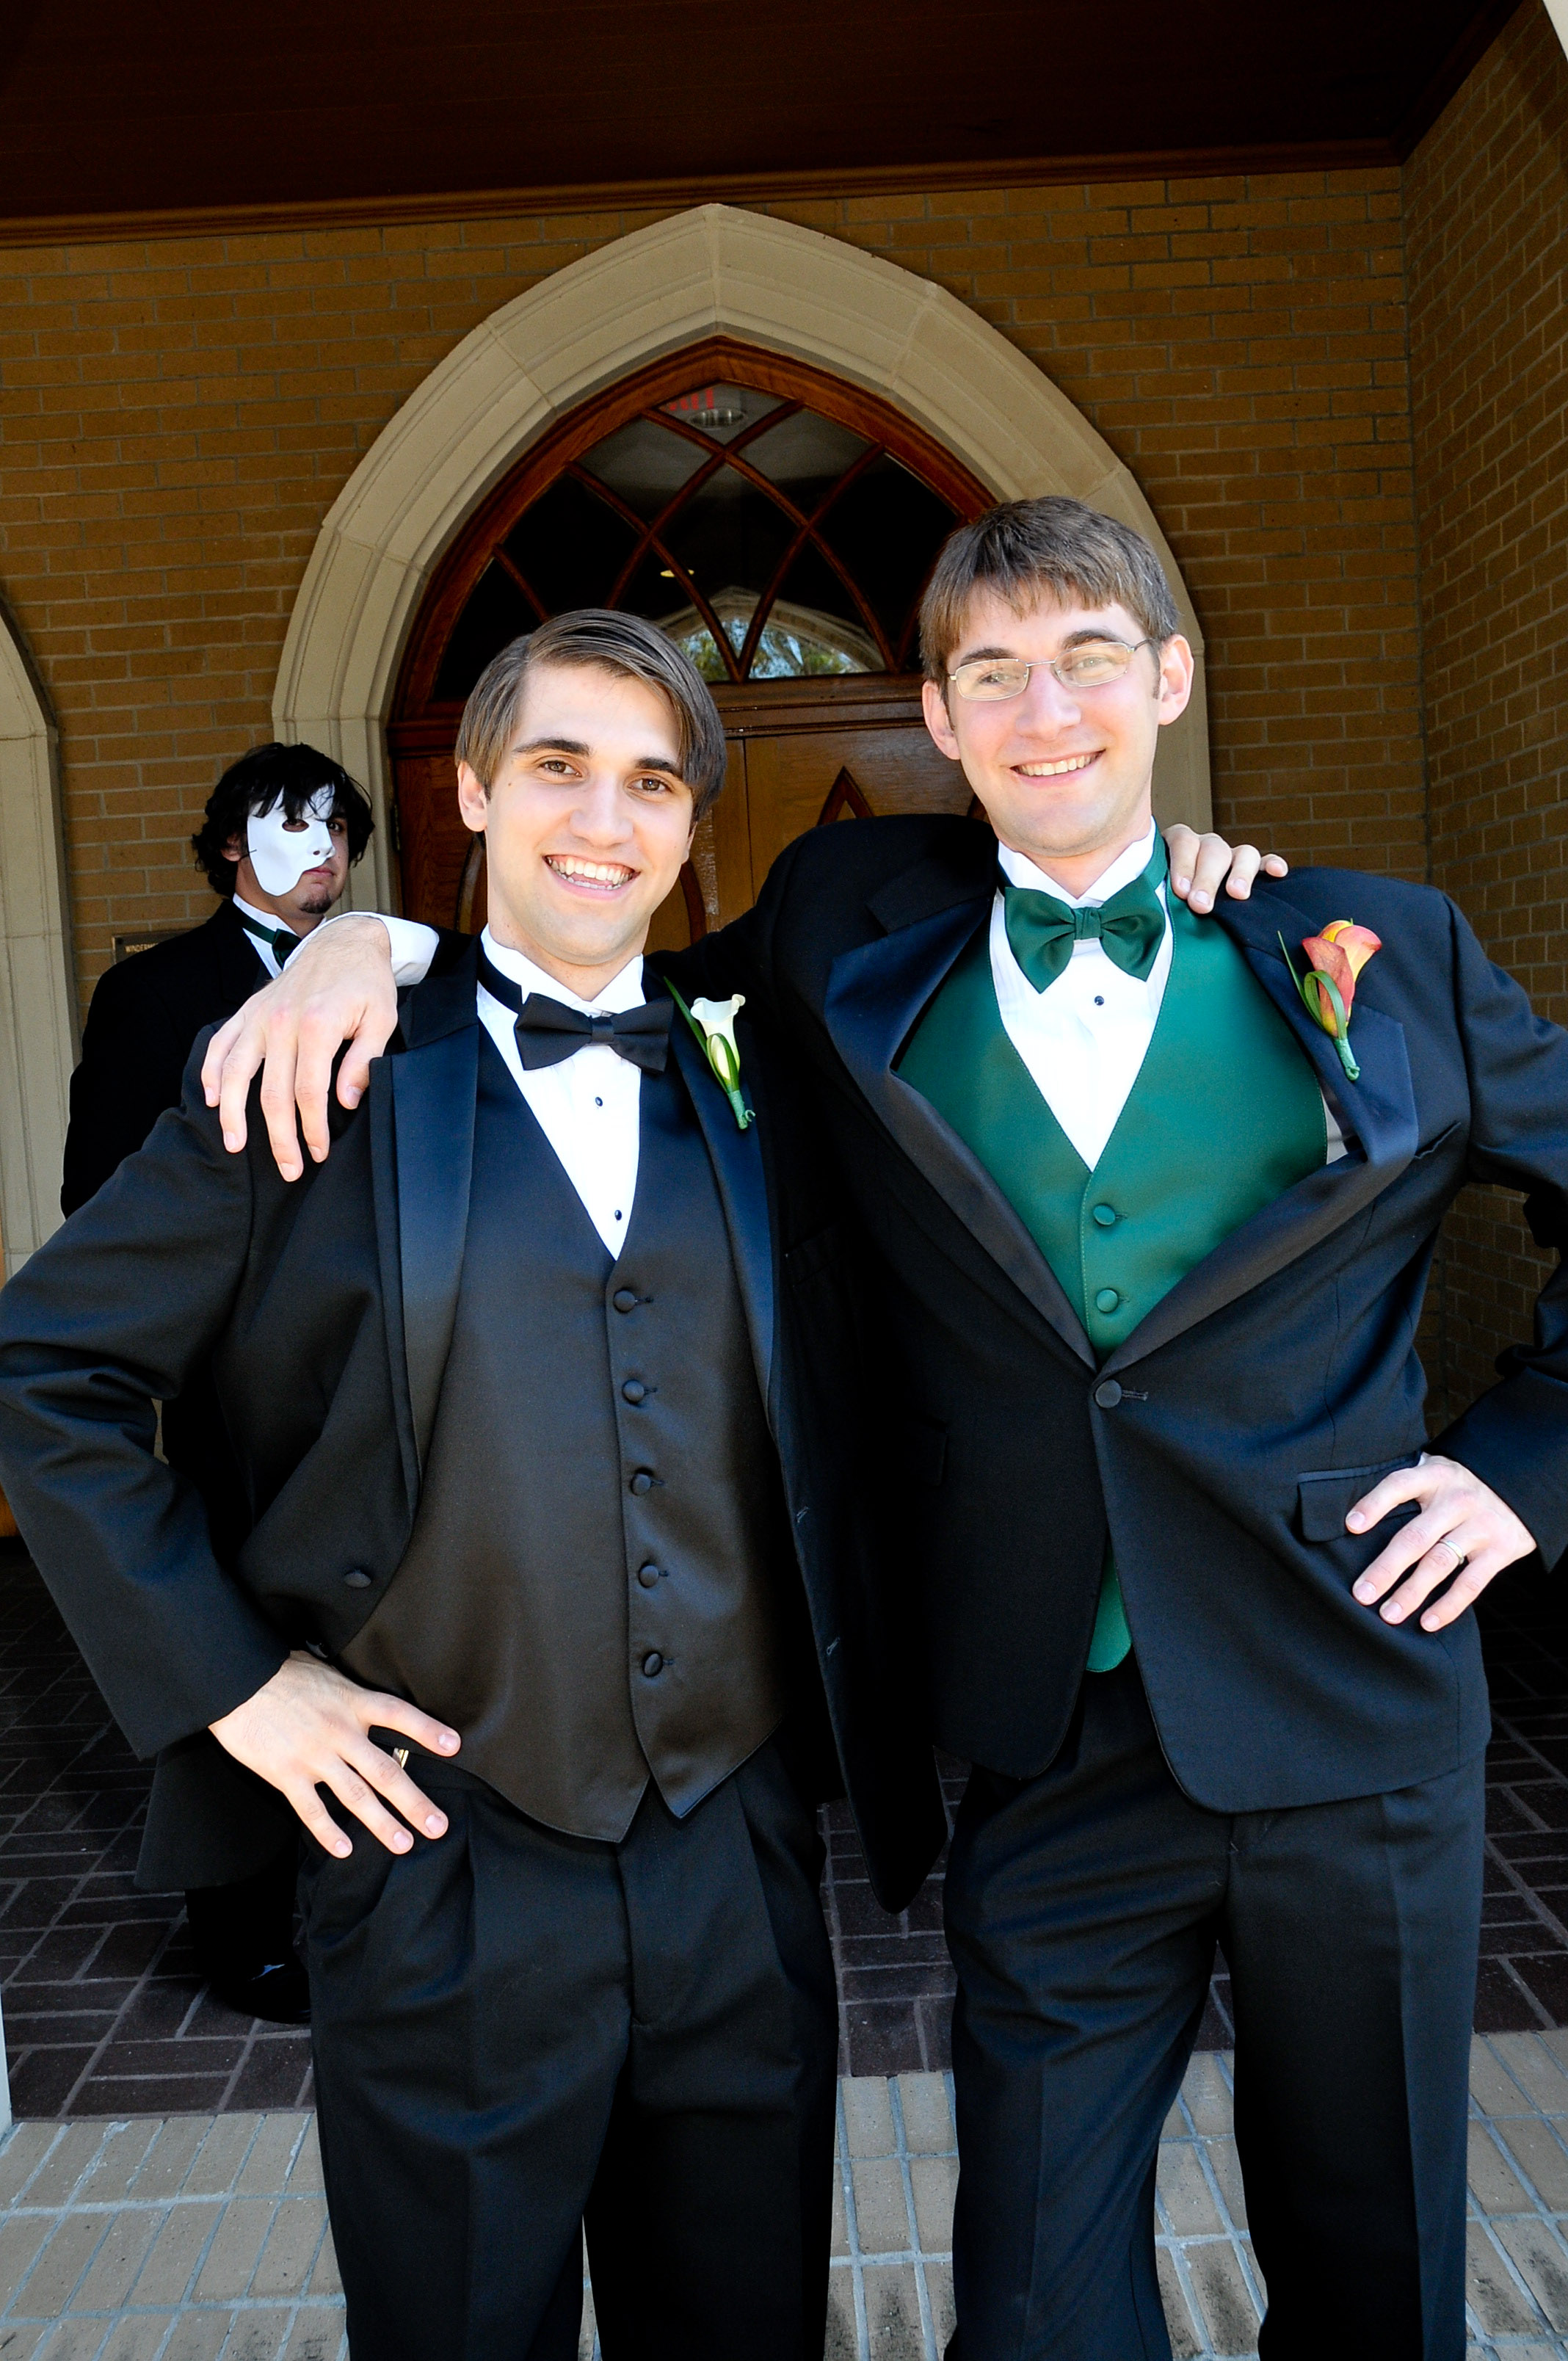 Groom and brother photobombed by Phantom of the Opera.